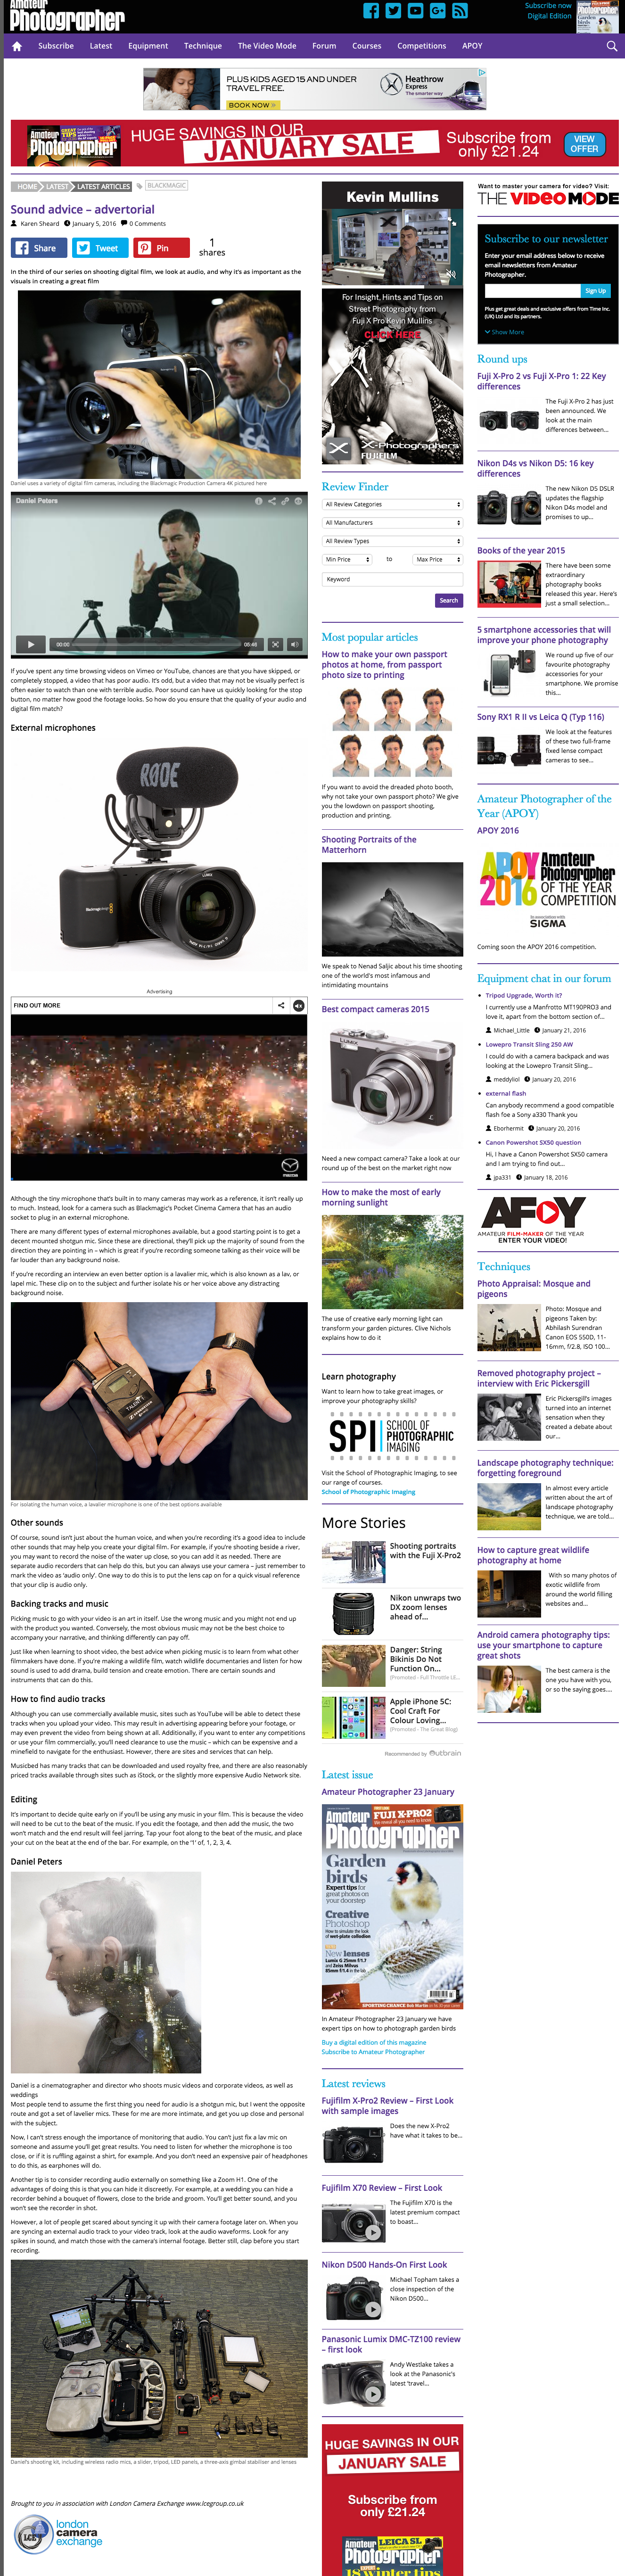 screencapture-www-amateurphotographer-co-uk-latest-articles-sound-advice-advertorial-67455-14534787577821.png